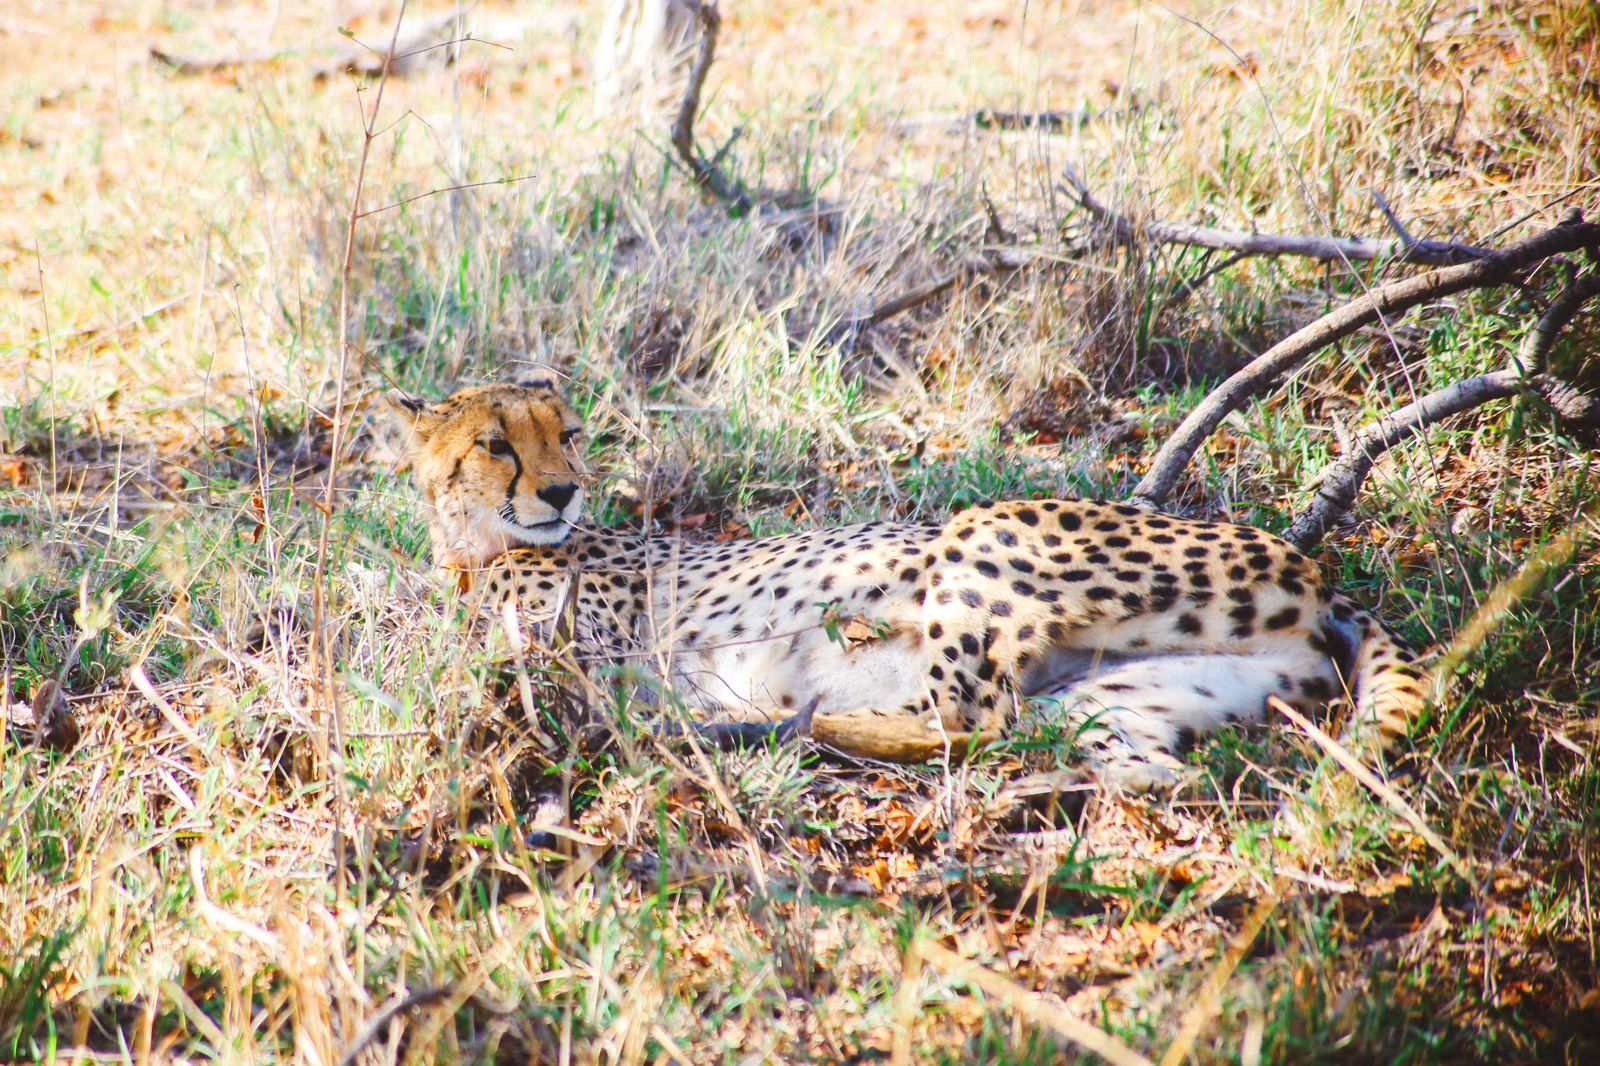 Sunrise Till Sunset - A 24 Hour South African Safari Diary (23)